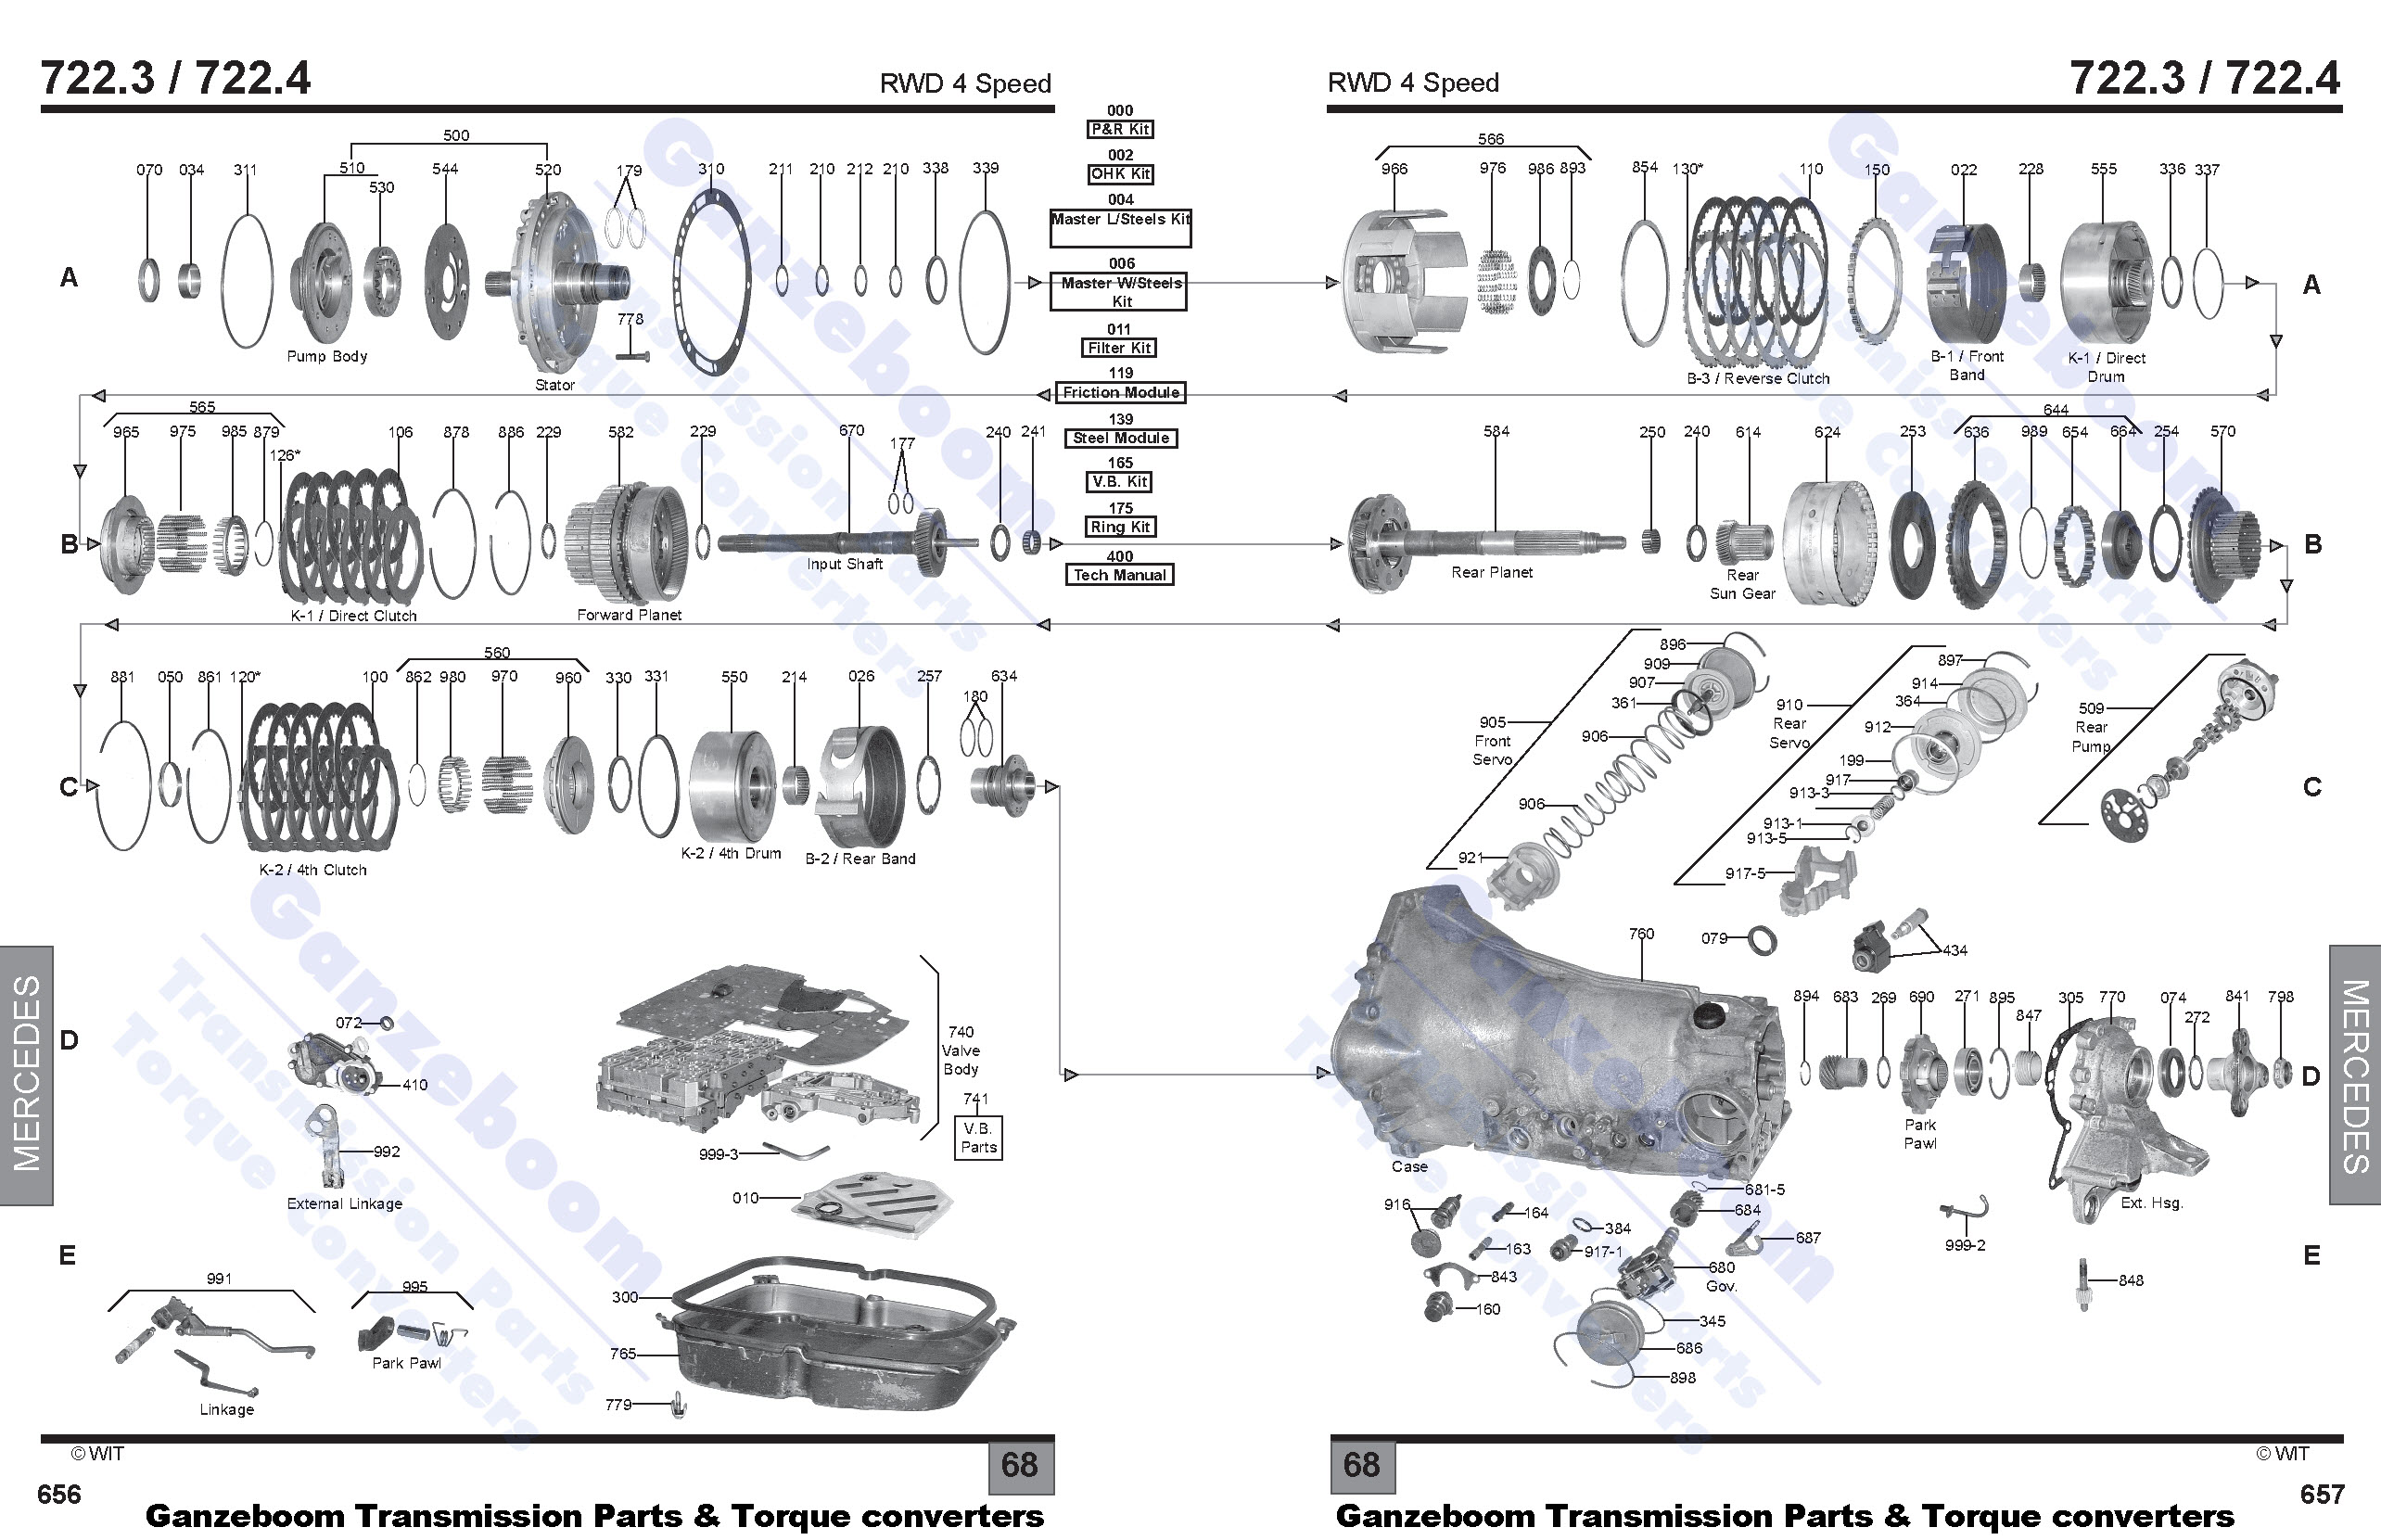 Post 2000 Ford Explorer Parts Diagram 590982 also 22755 Manual Transmission Identification likewise Mercedes likewise Index cfm furthermore Tpcat. on ford automatic transmission parts